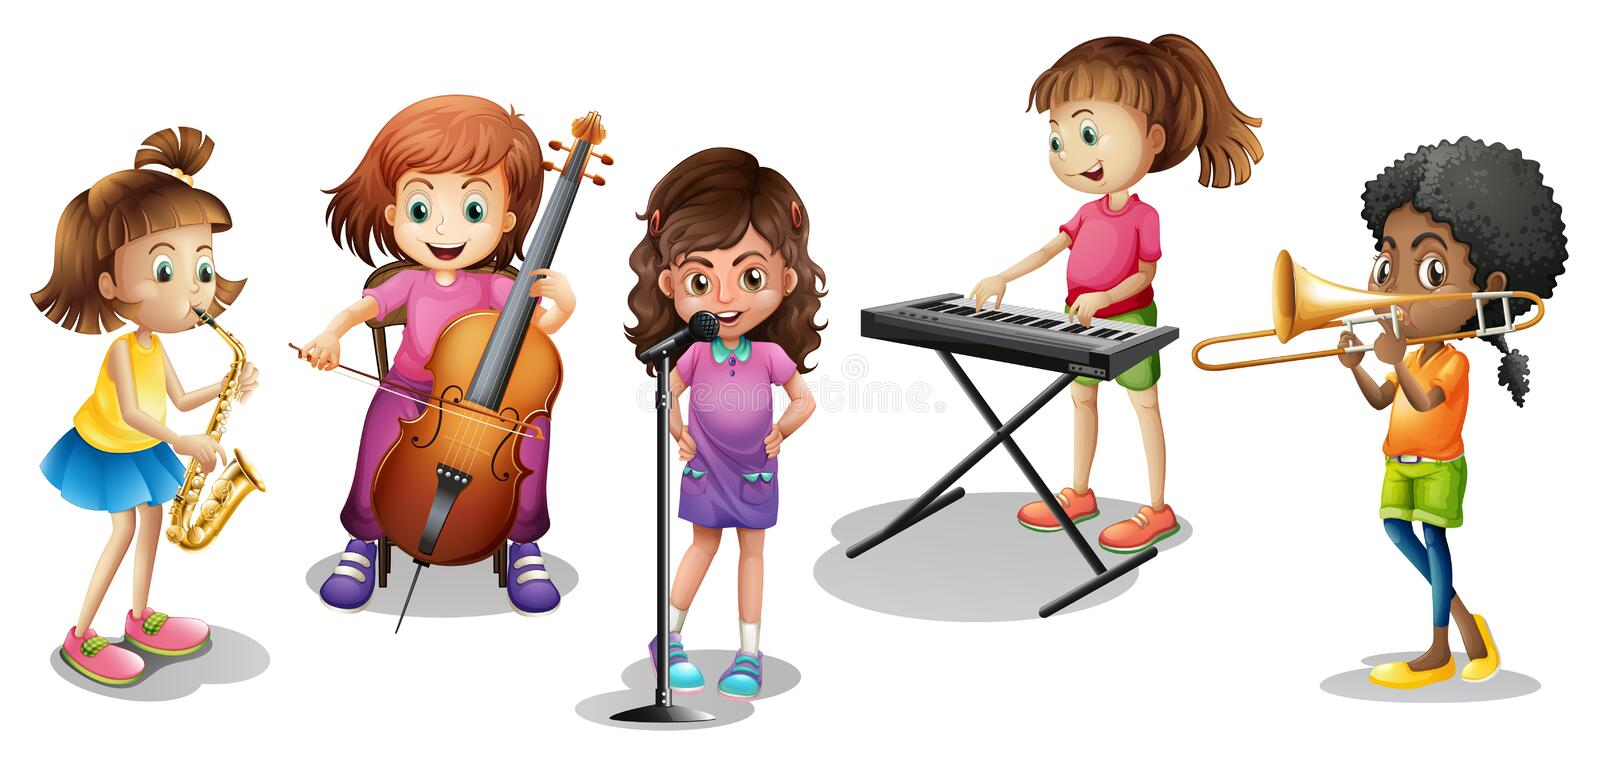 Many kids playing different musical instruments royalty free illustration